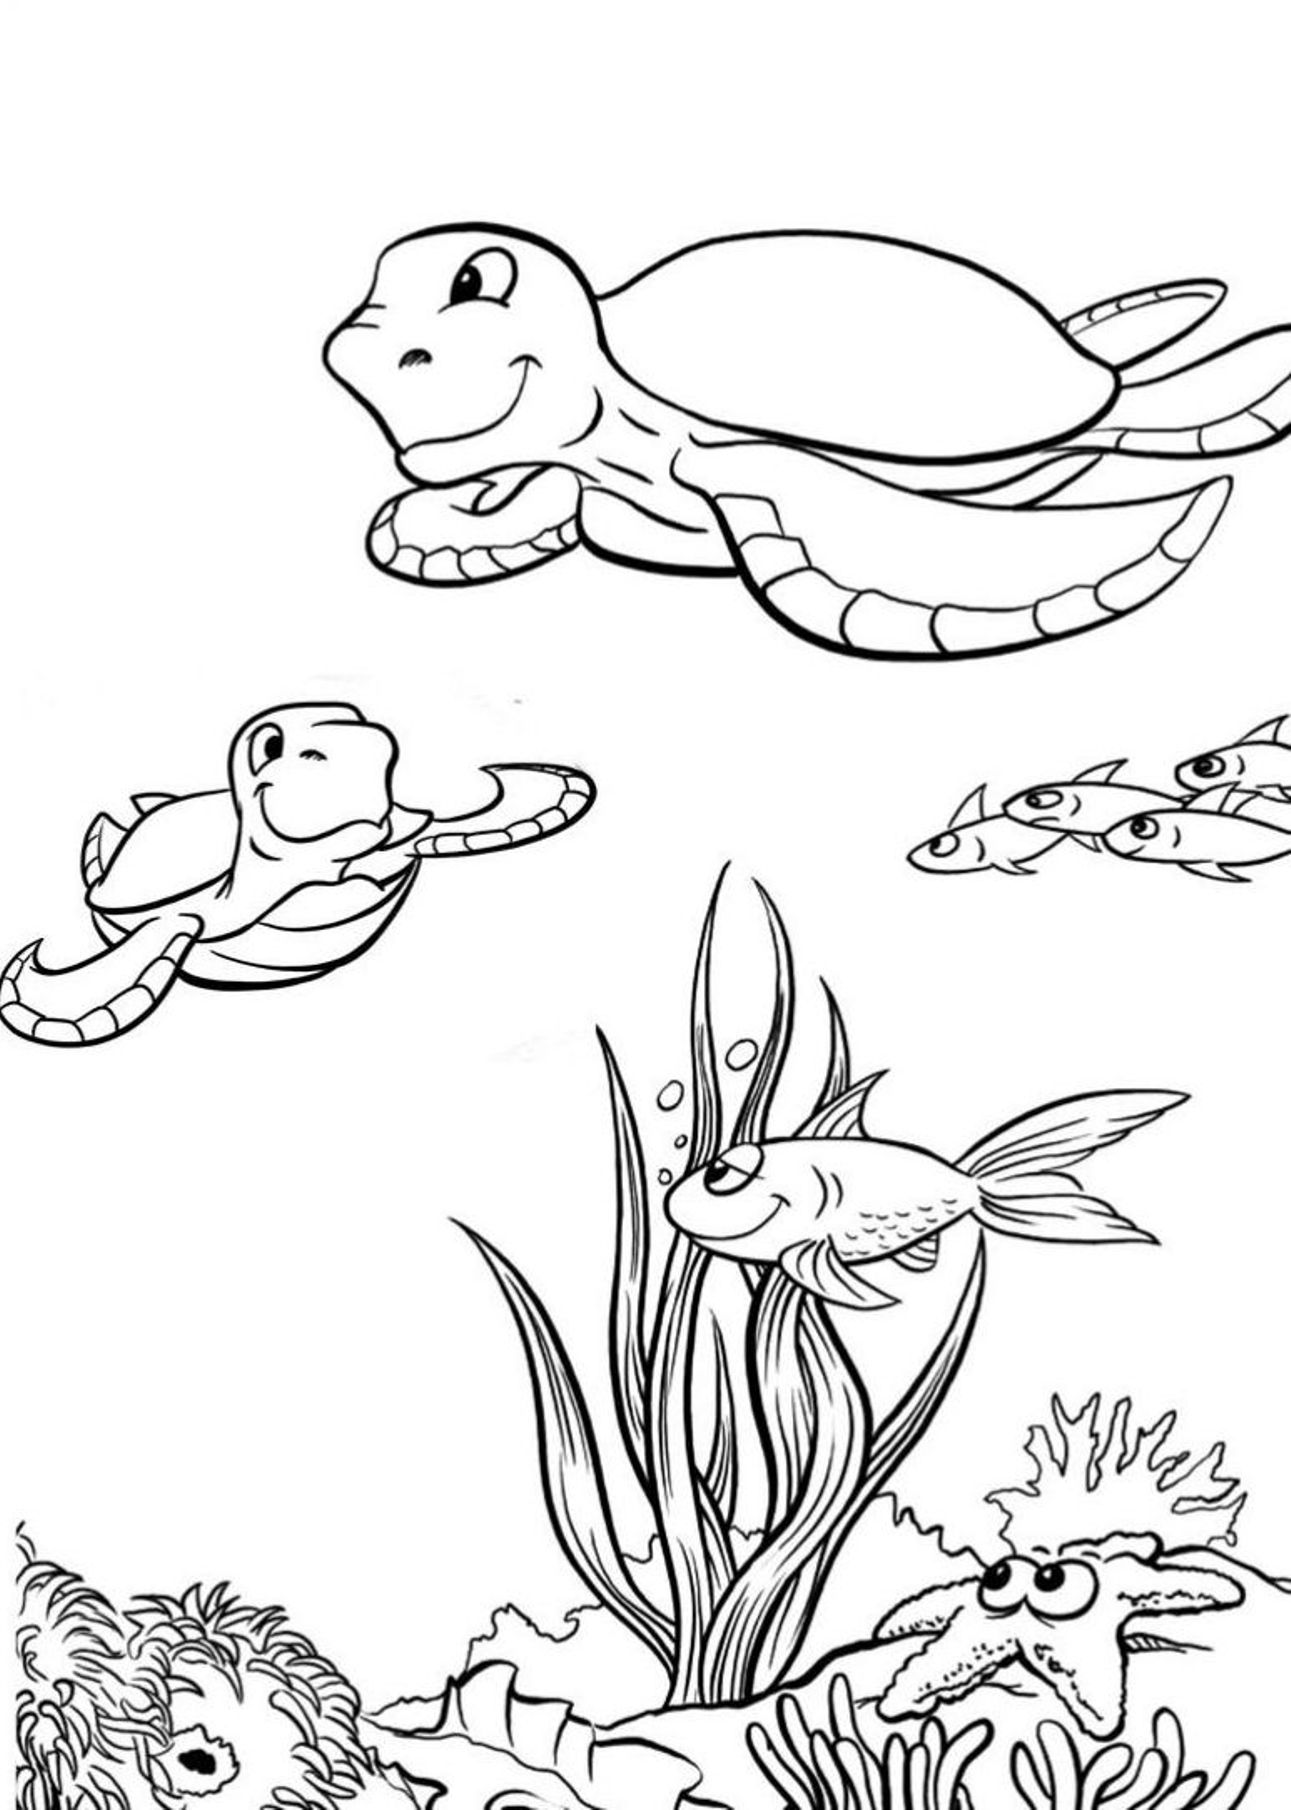 mommy turtle coloring pages - photo#22